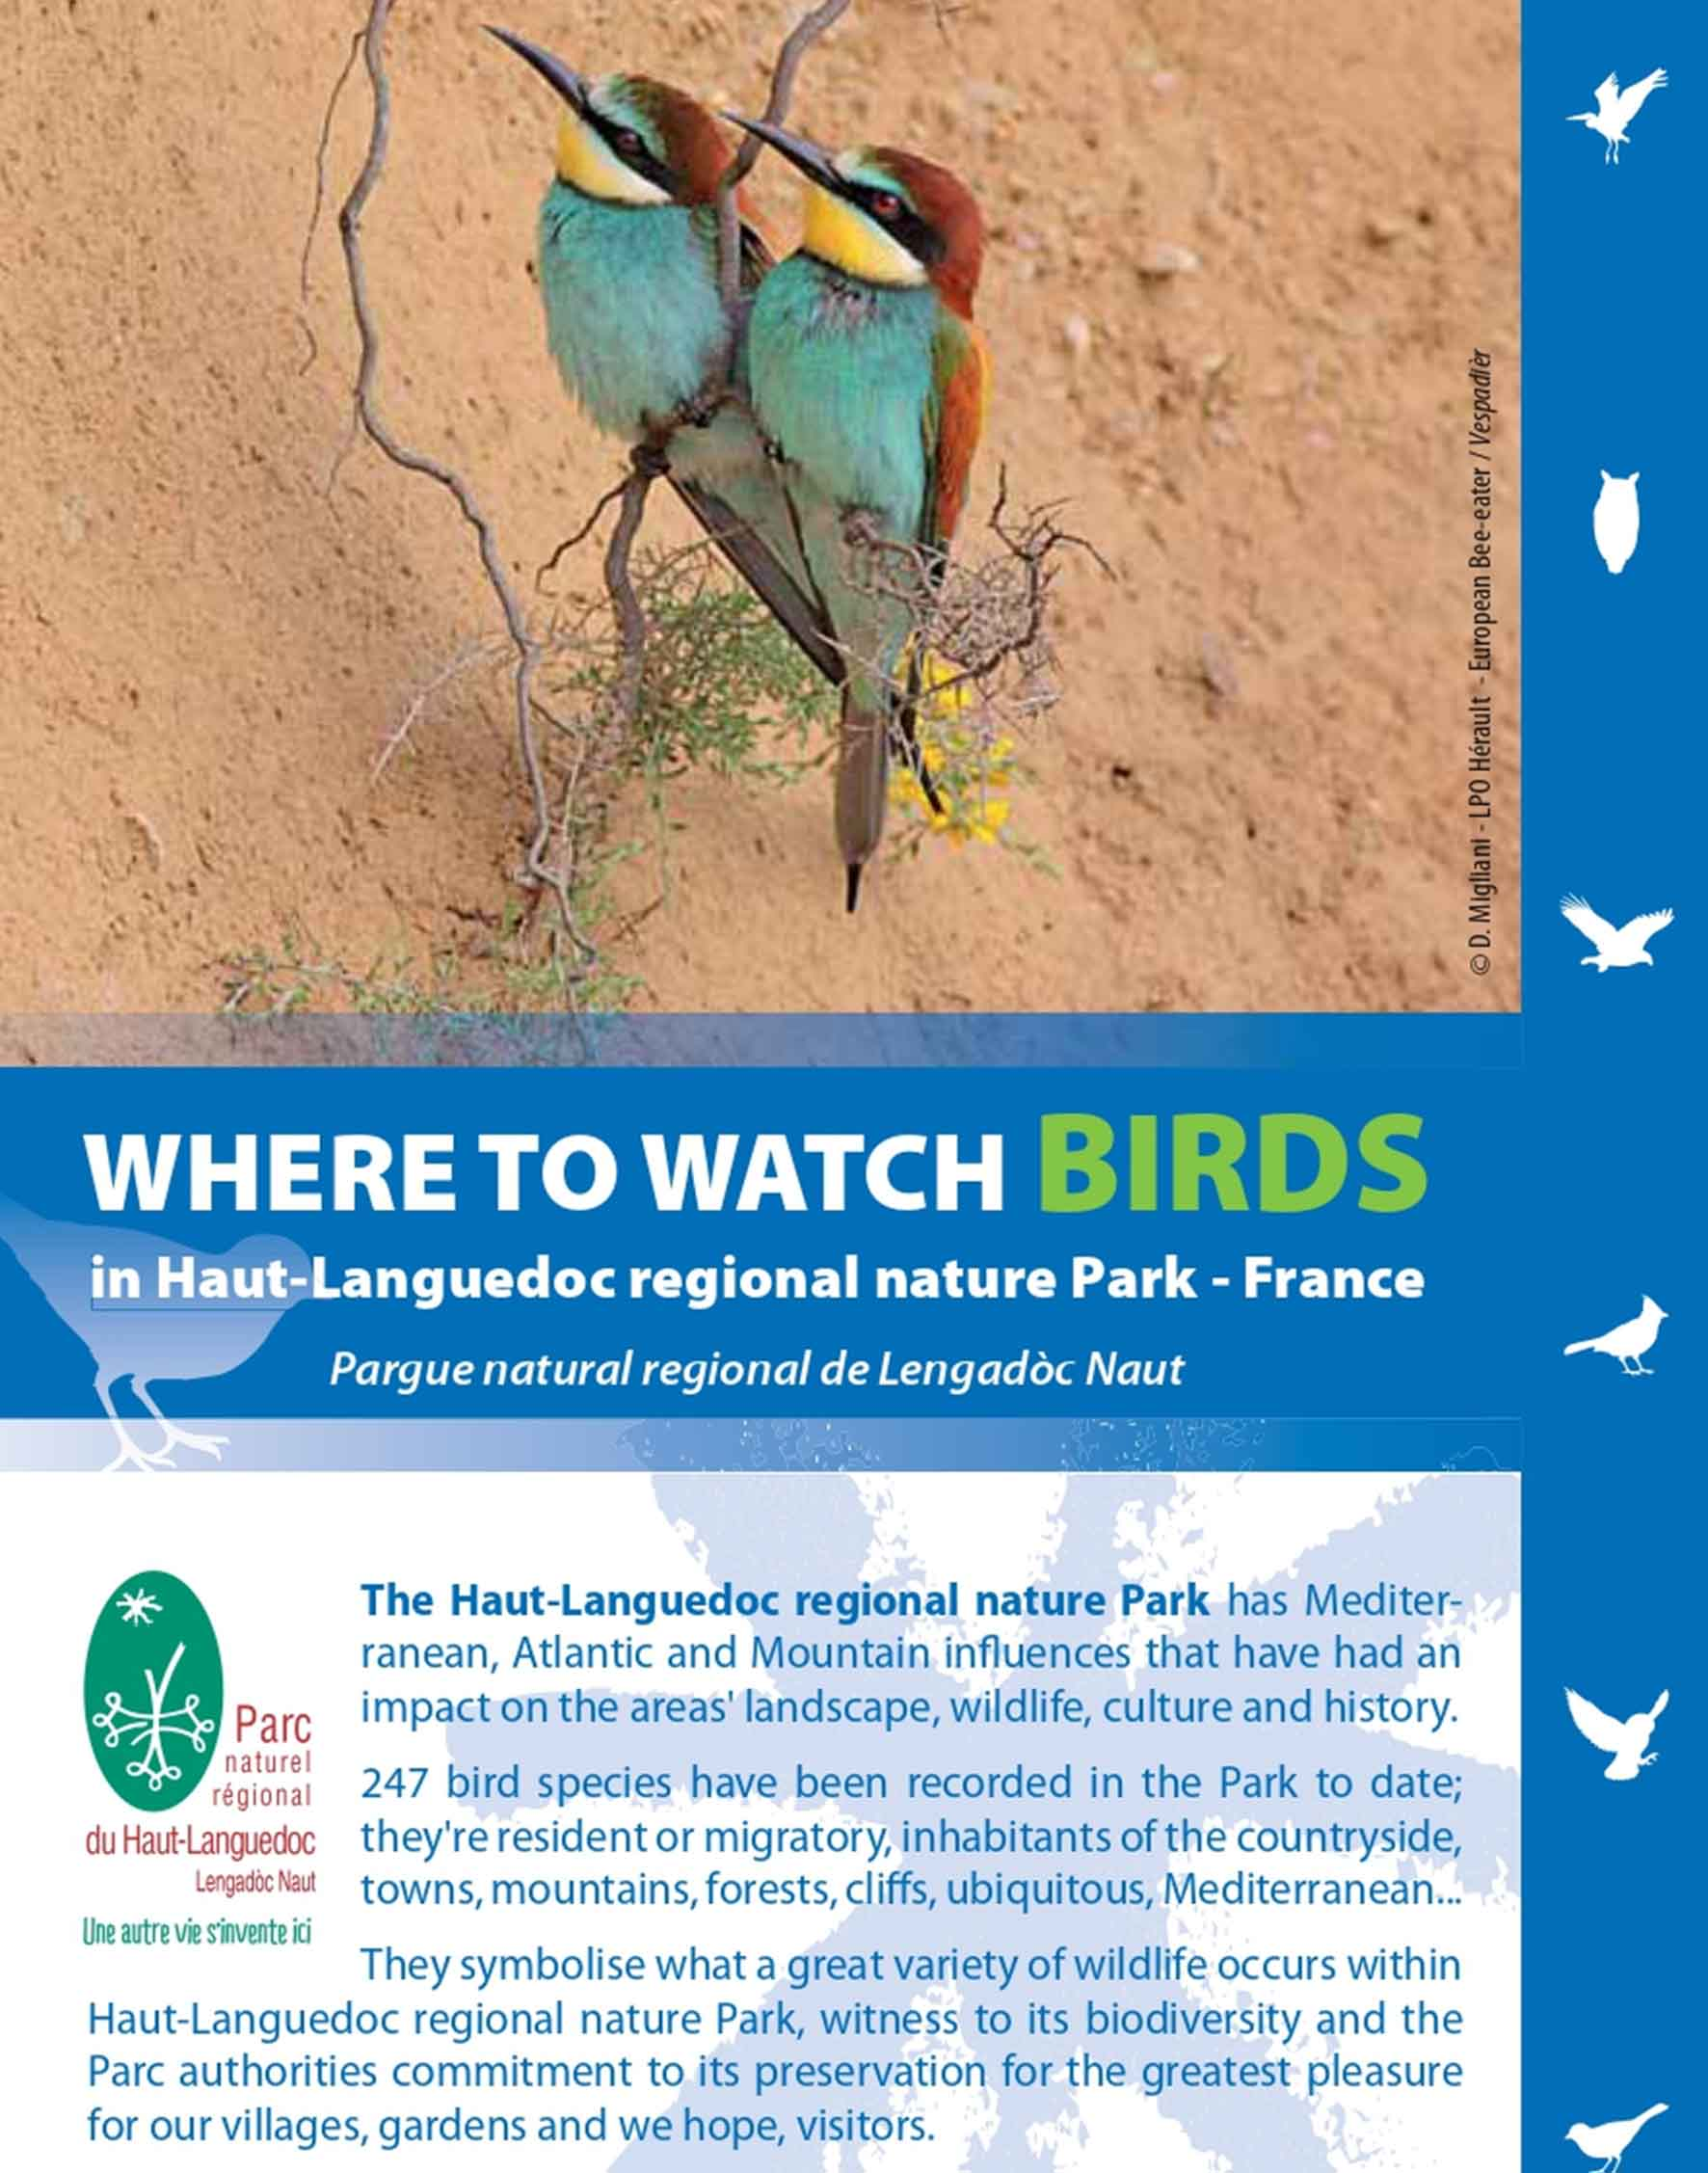 """Where to watch birds in the Haut-Languedoc Regional nature park"" guide"